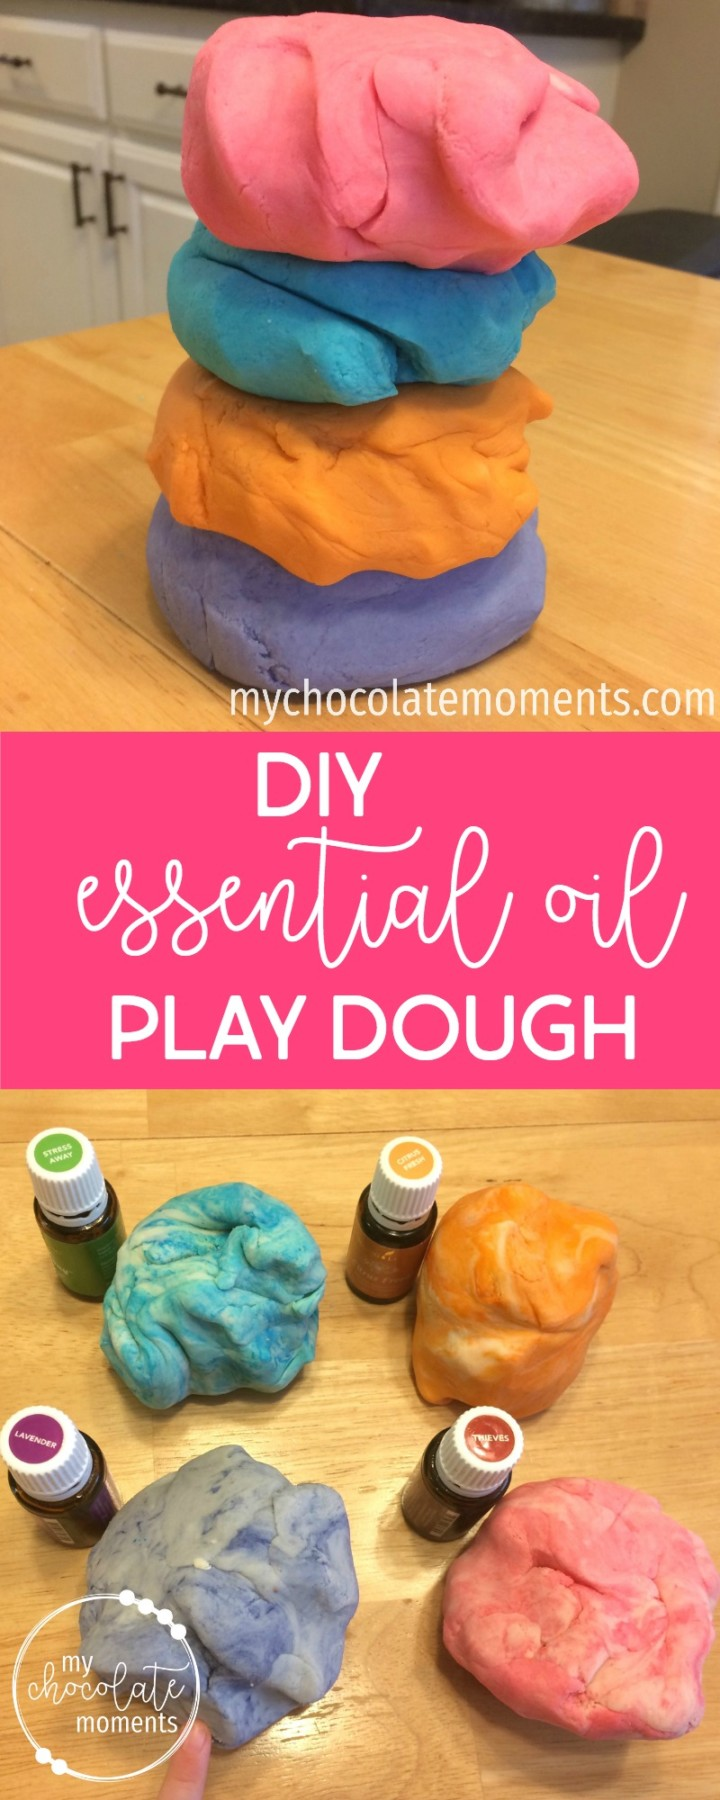 DIY essential oil play dough